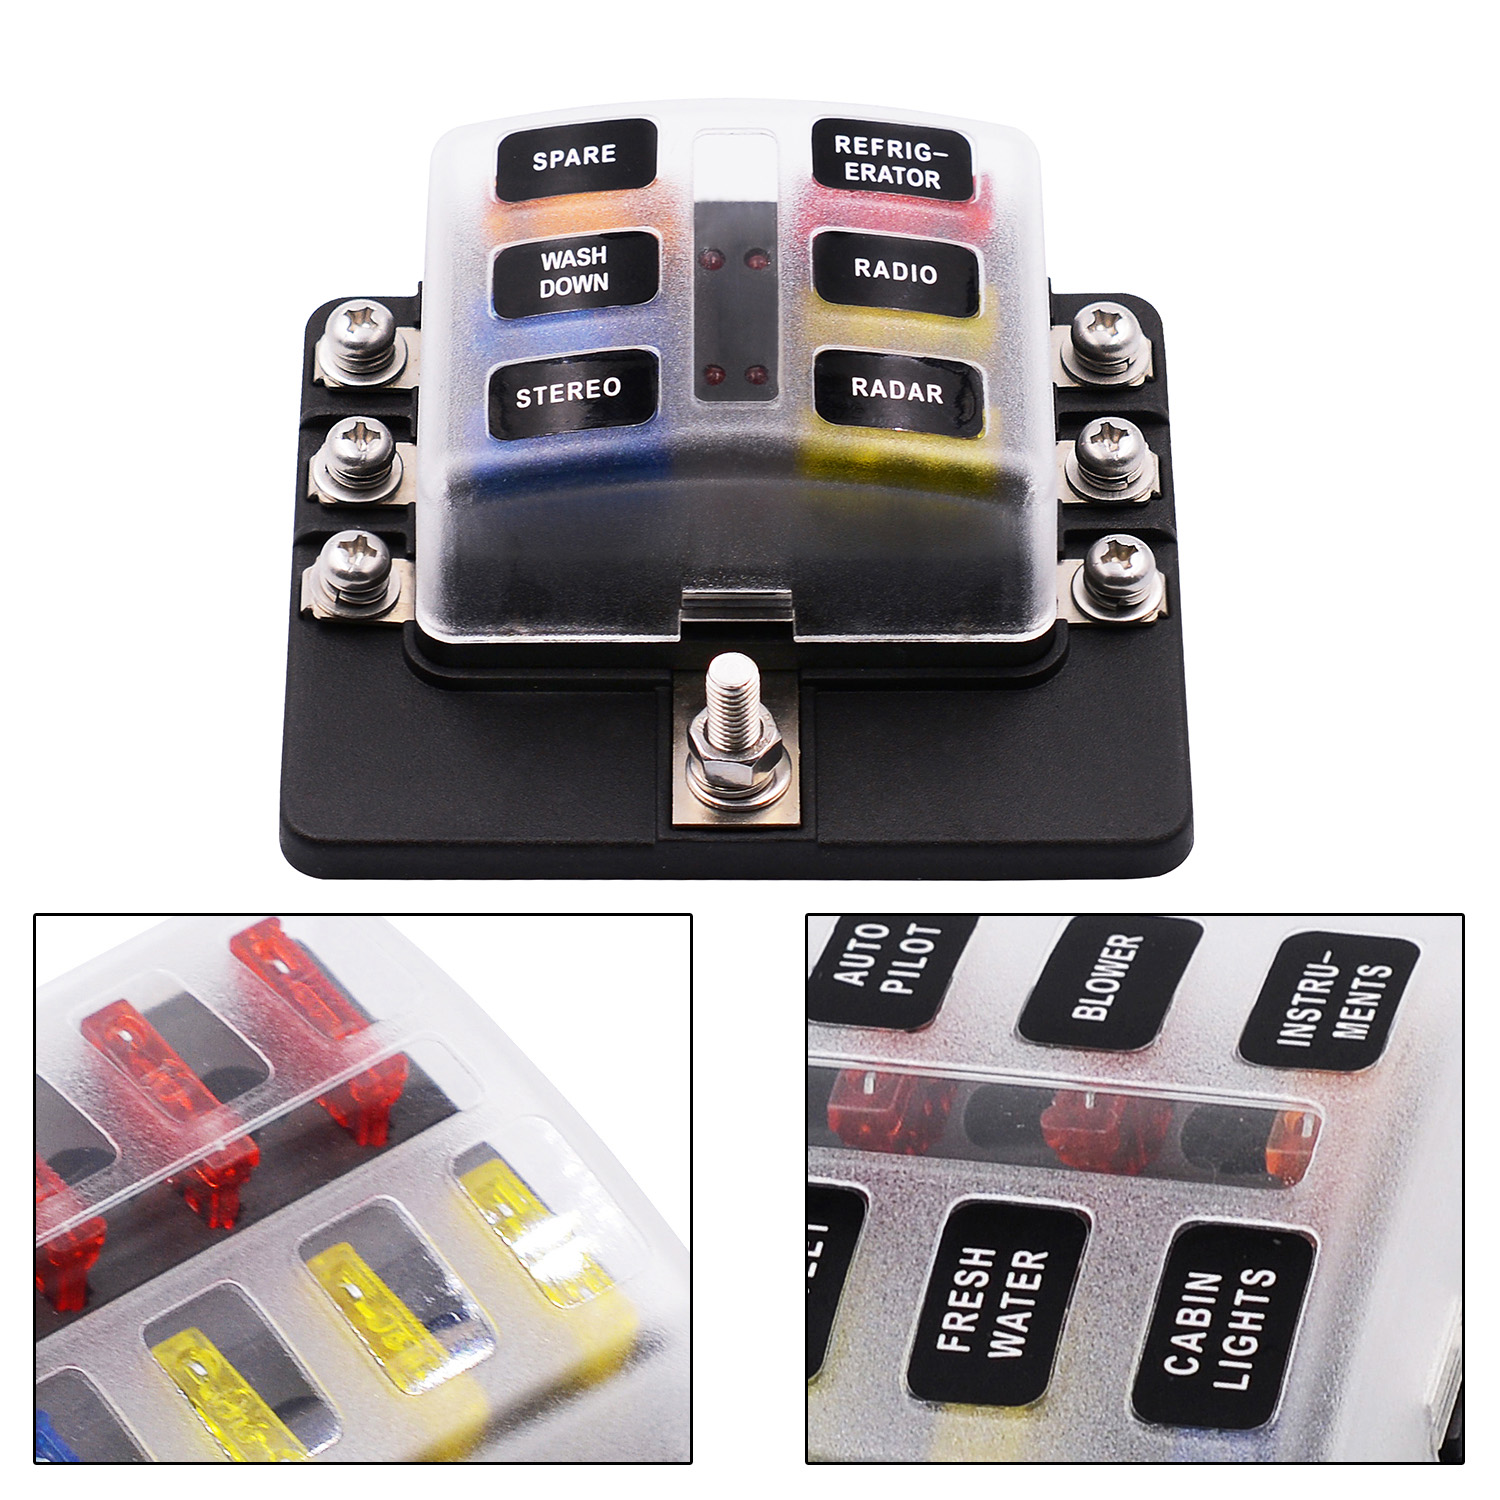 6 Way Fuse Box Blade Holder 5 10 15 20a Led Waterproof Cover Fuses Vetomile 5a 10a 15a Free Indicator Waterpoof For Automotive Car Marine Boat Features